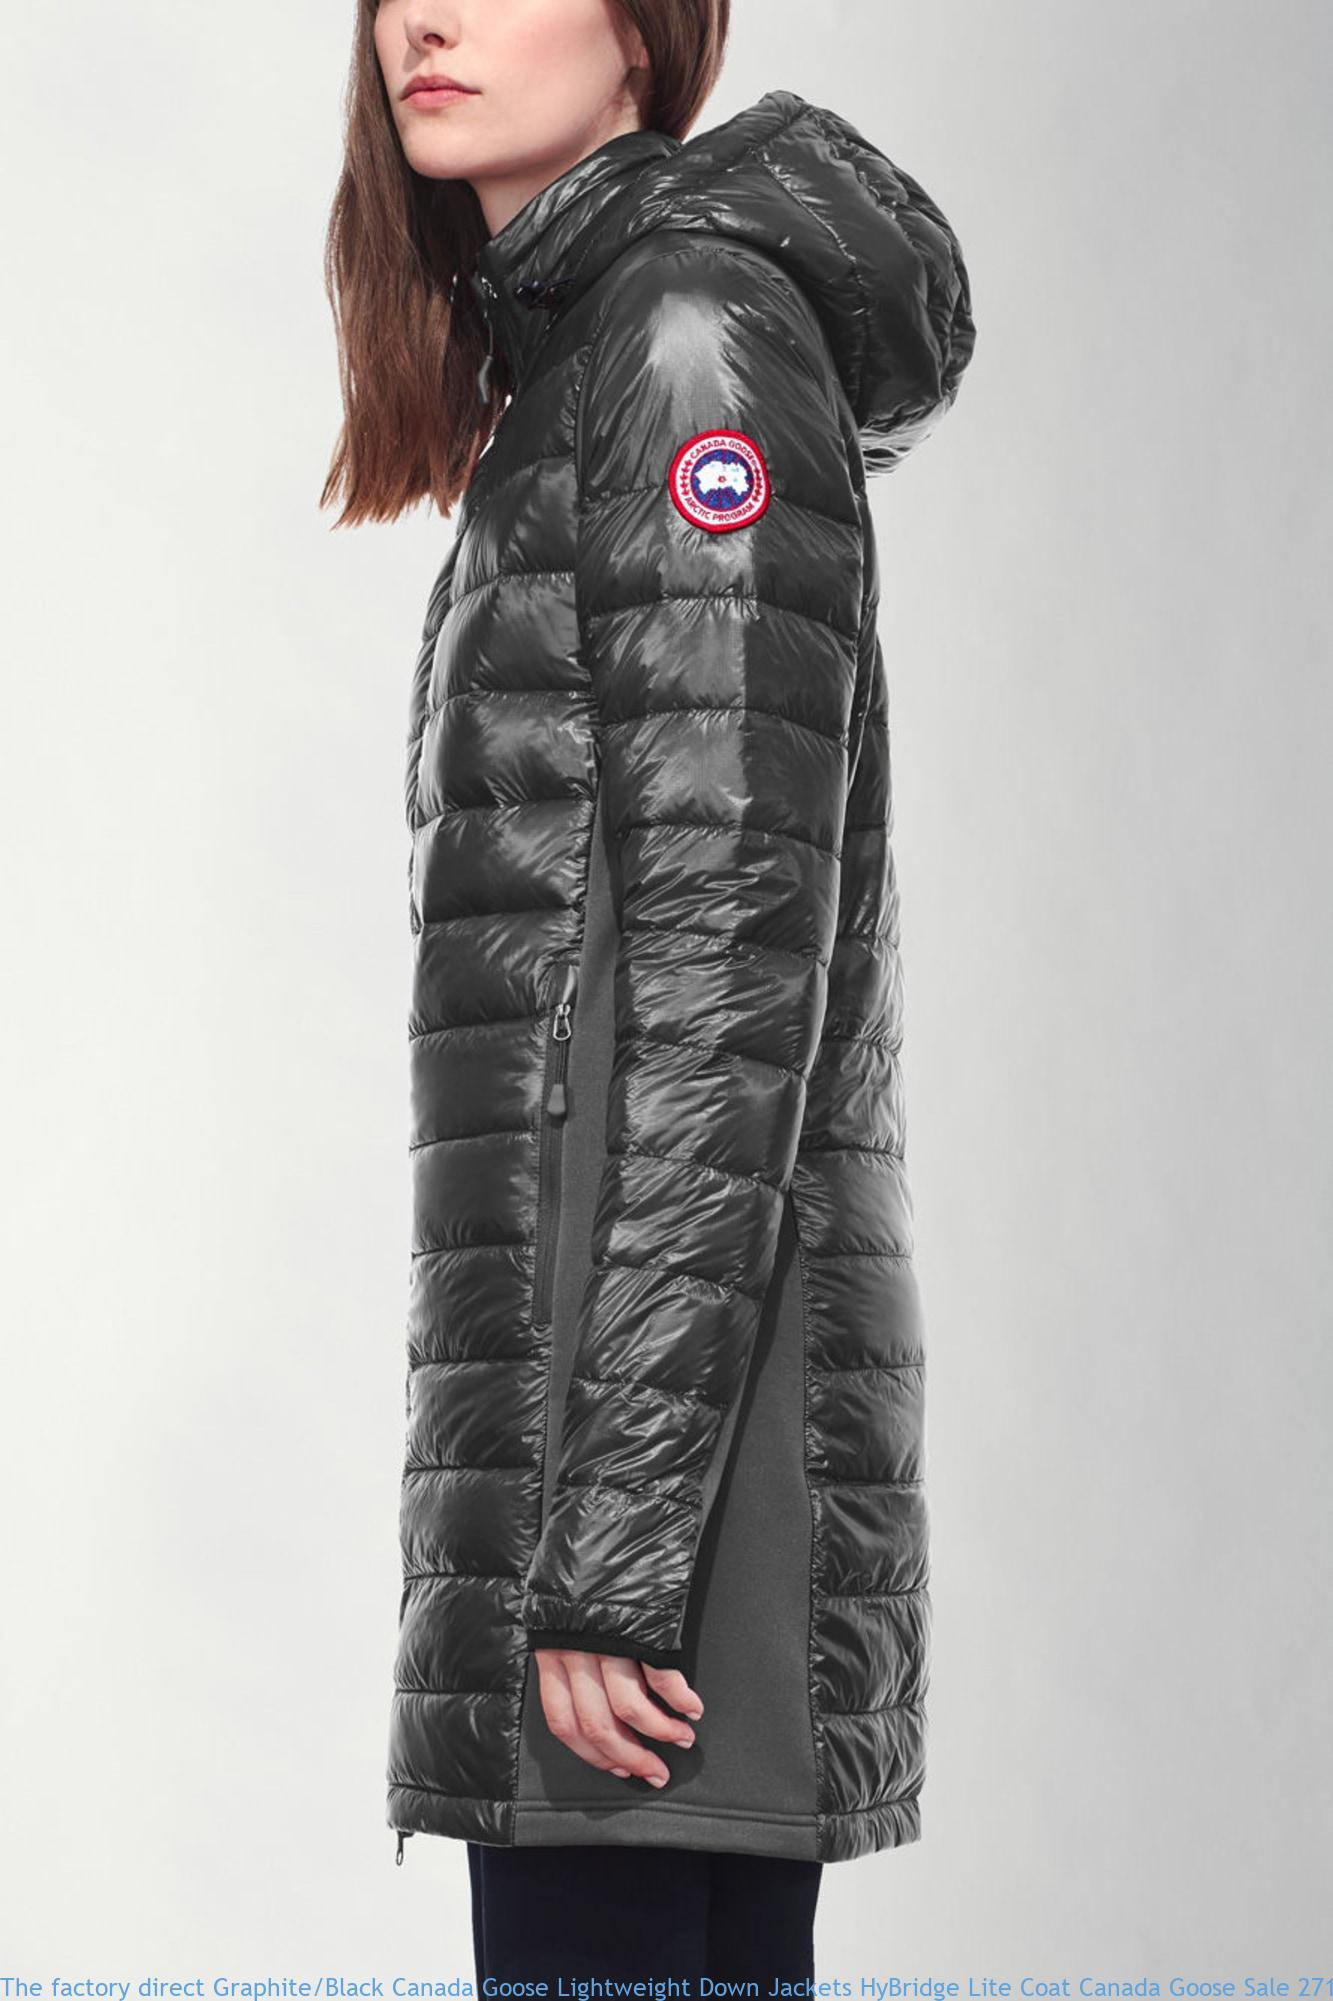 7caac248b84 The factory direct Graphite/Black Canada Goose Lightweight Down Jackets  HyBridge Lite Coat Canada Goose Sale 2710L